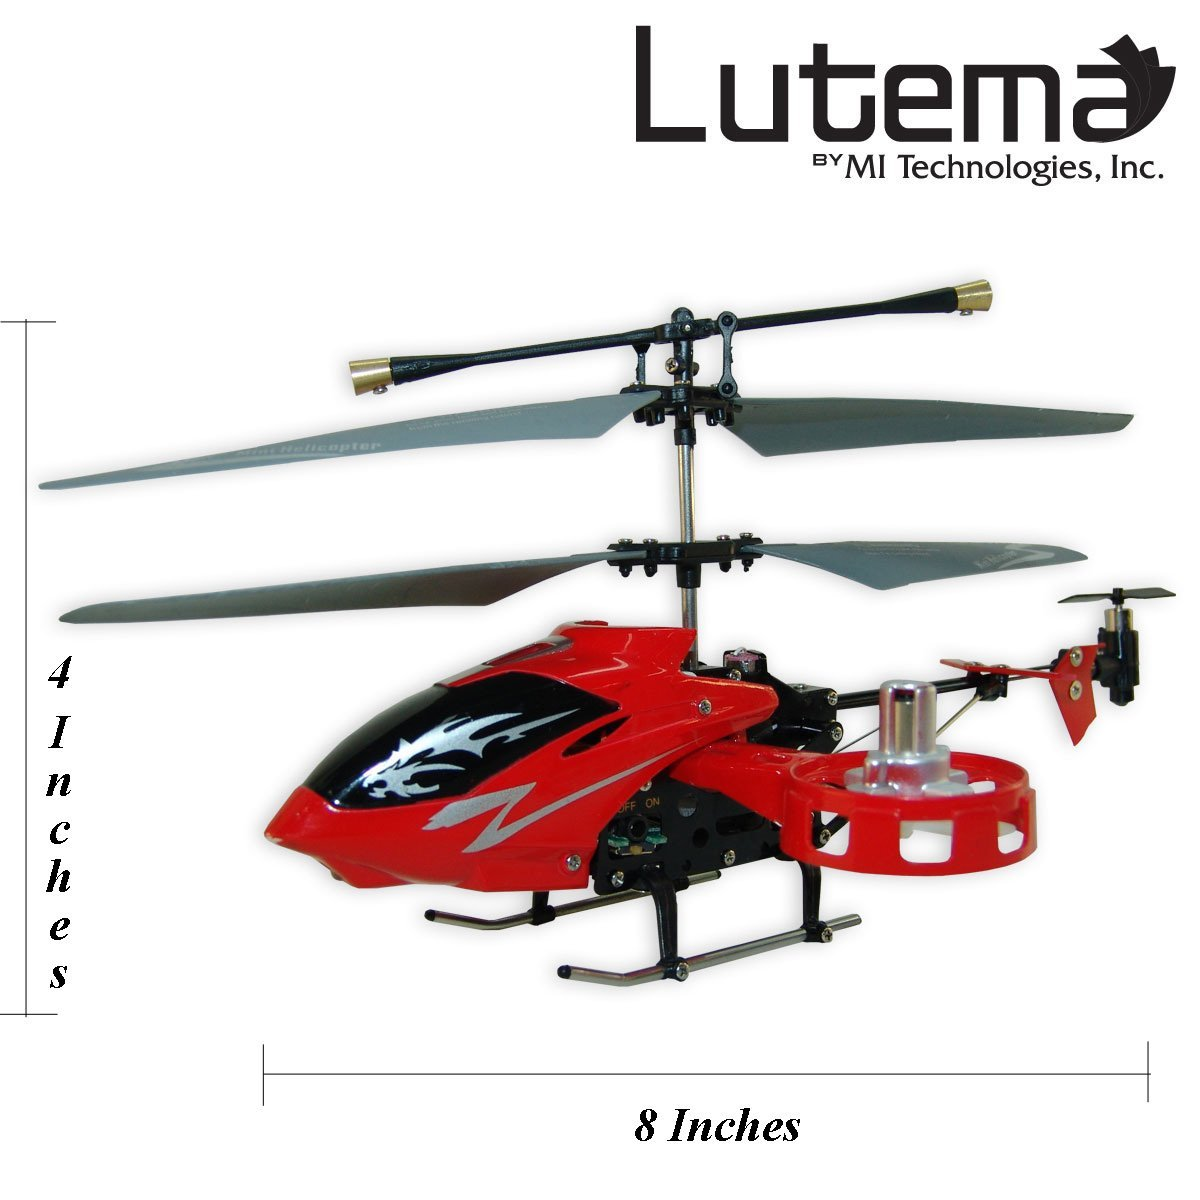 Lutema Avatar Hovercraft 4CH Remote Control Helicopter - Red